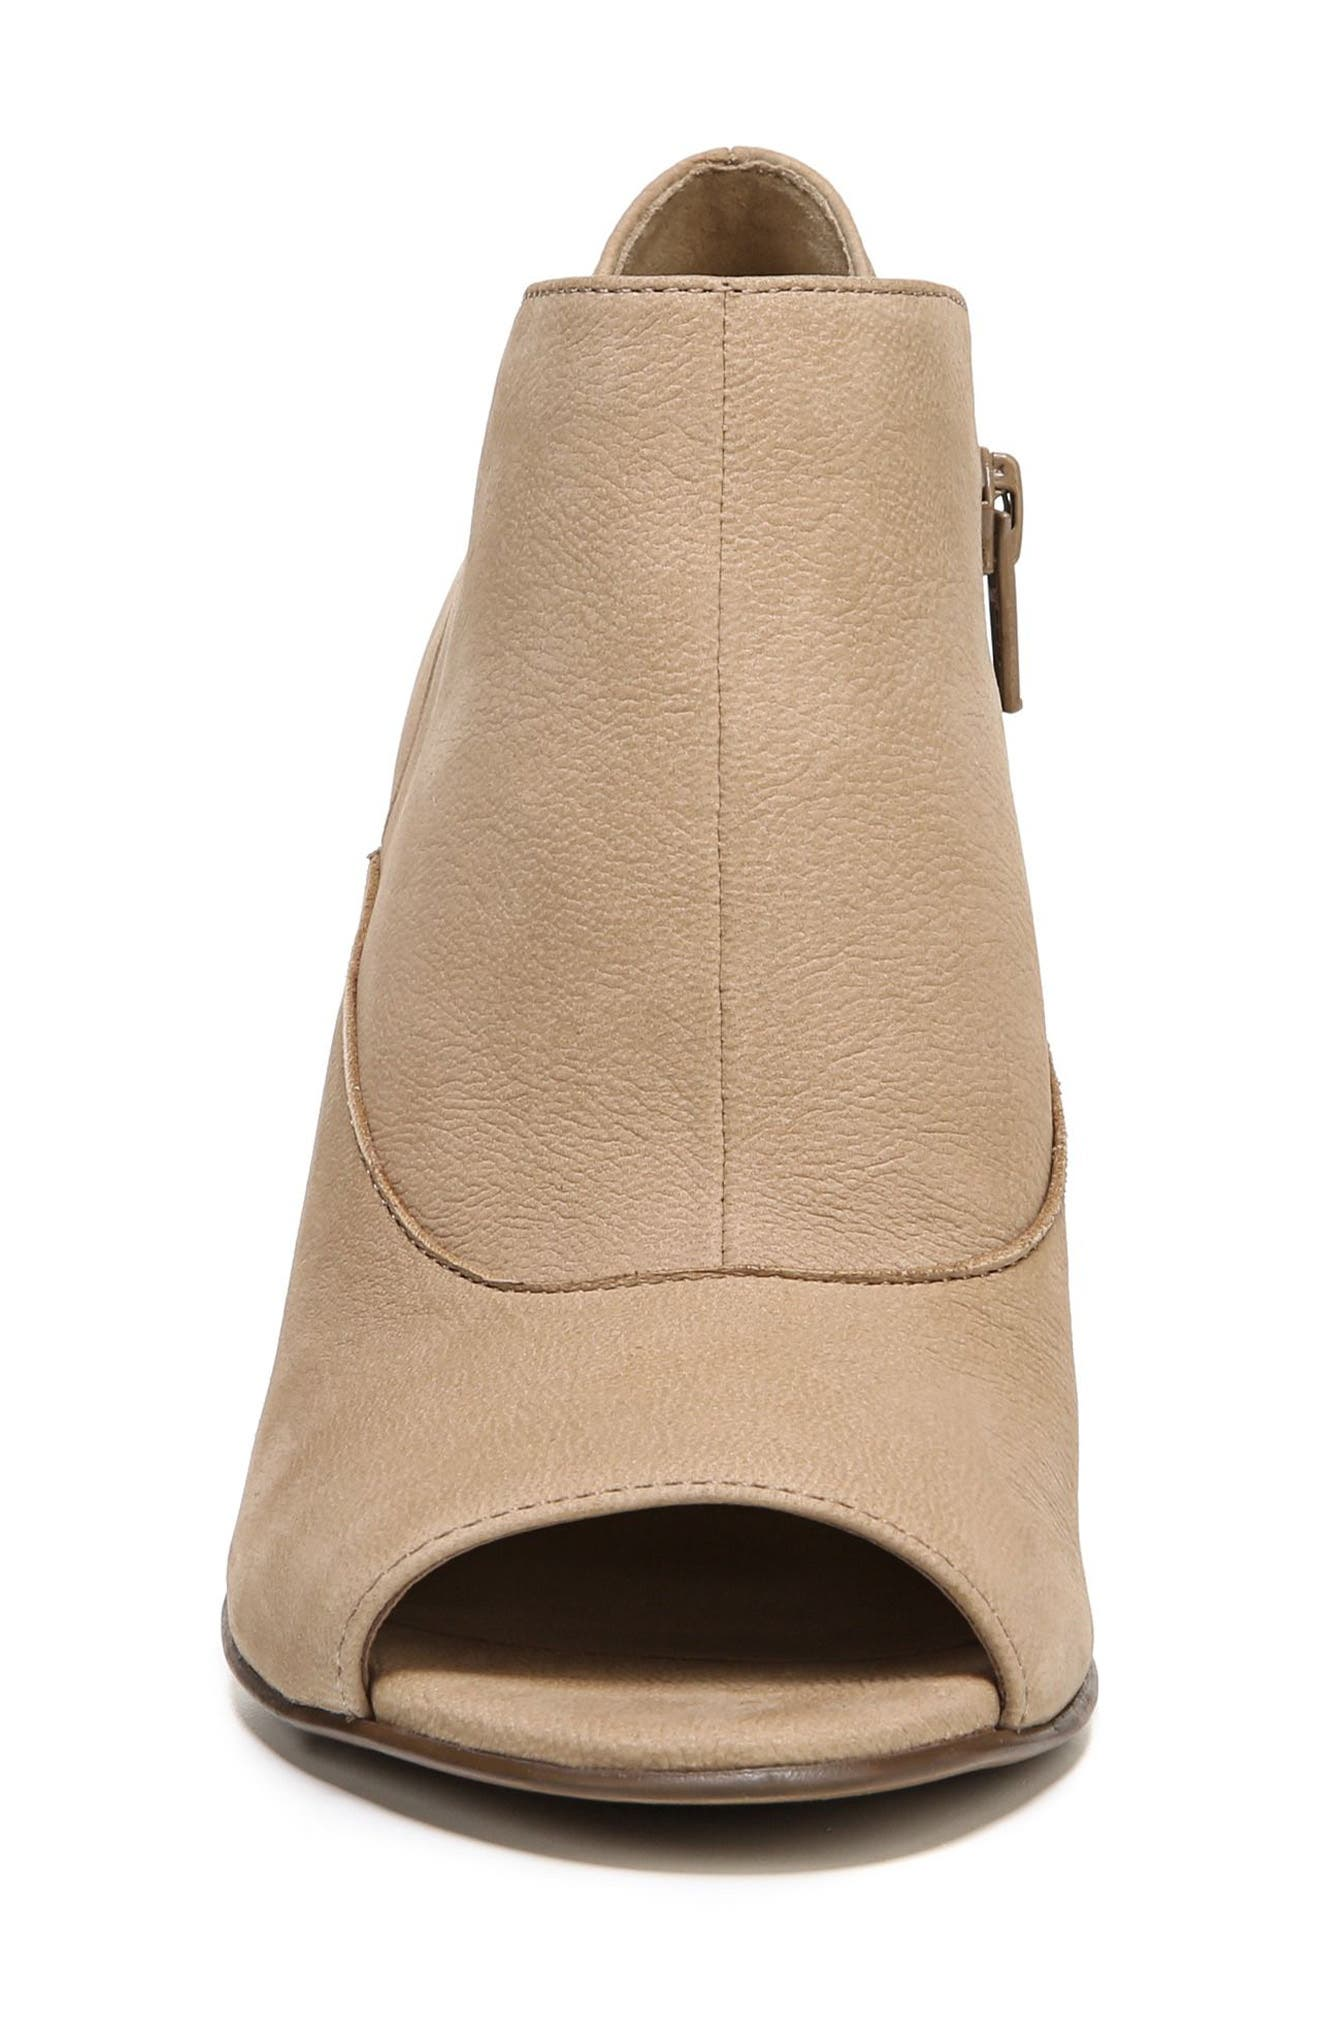 Skylar Open Toe Bootie,                             Alternate thumbnail 4, color,                             Barley Nubuck